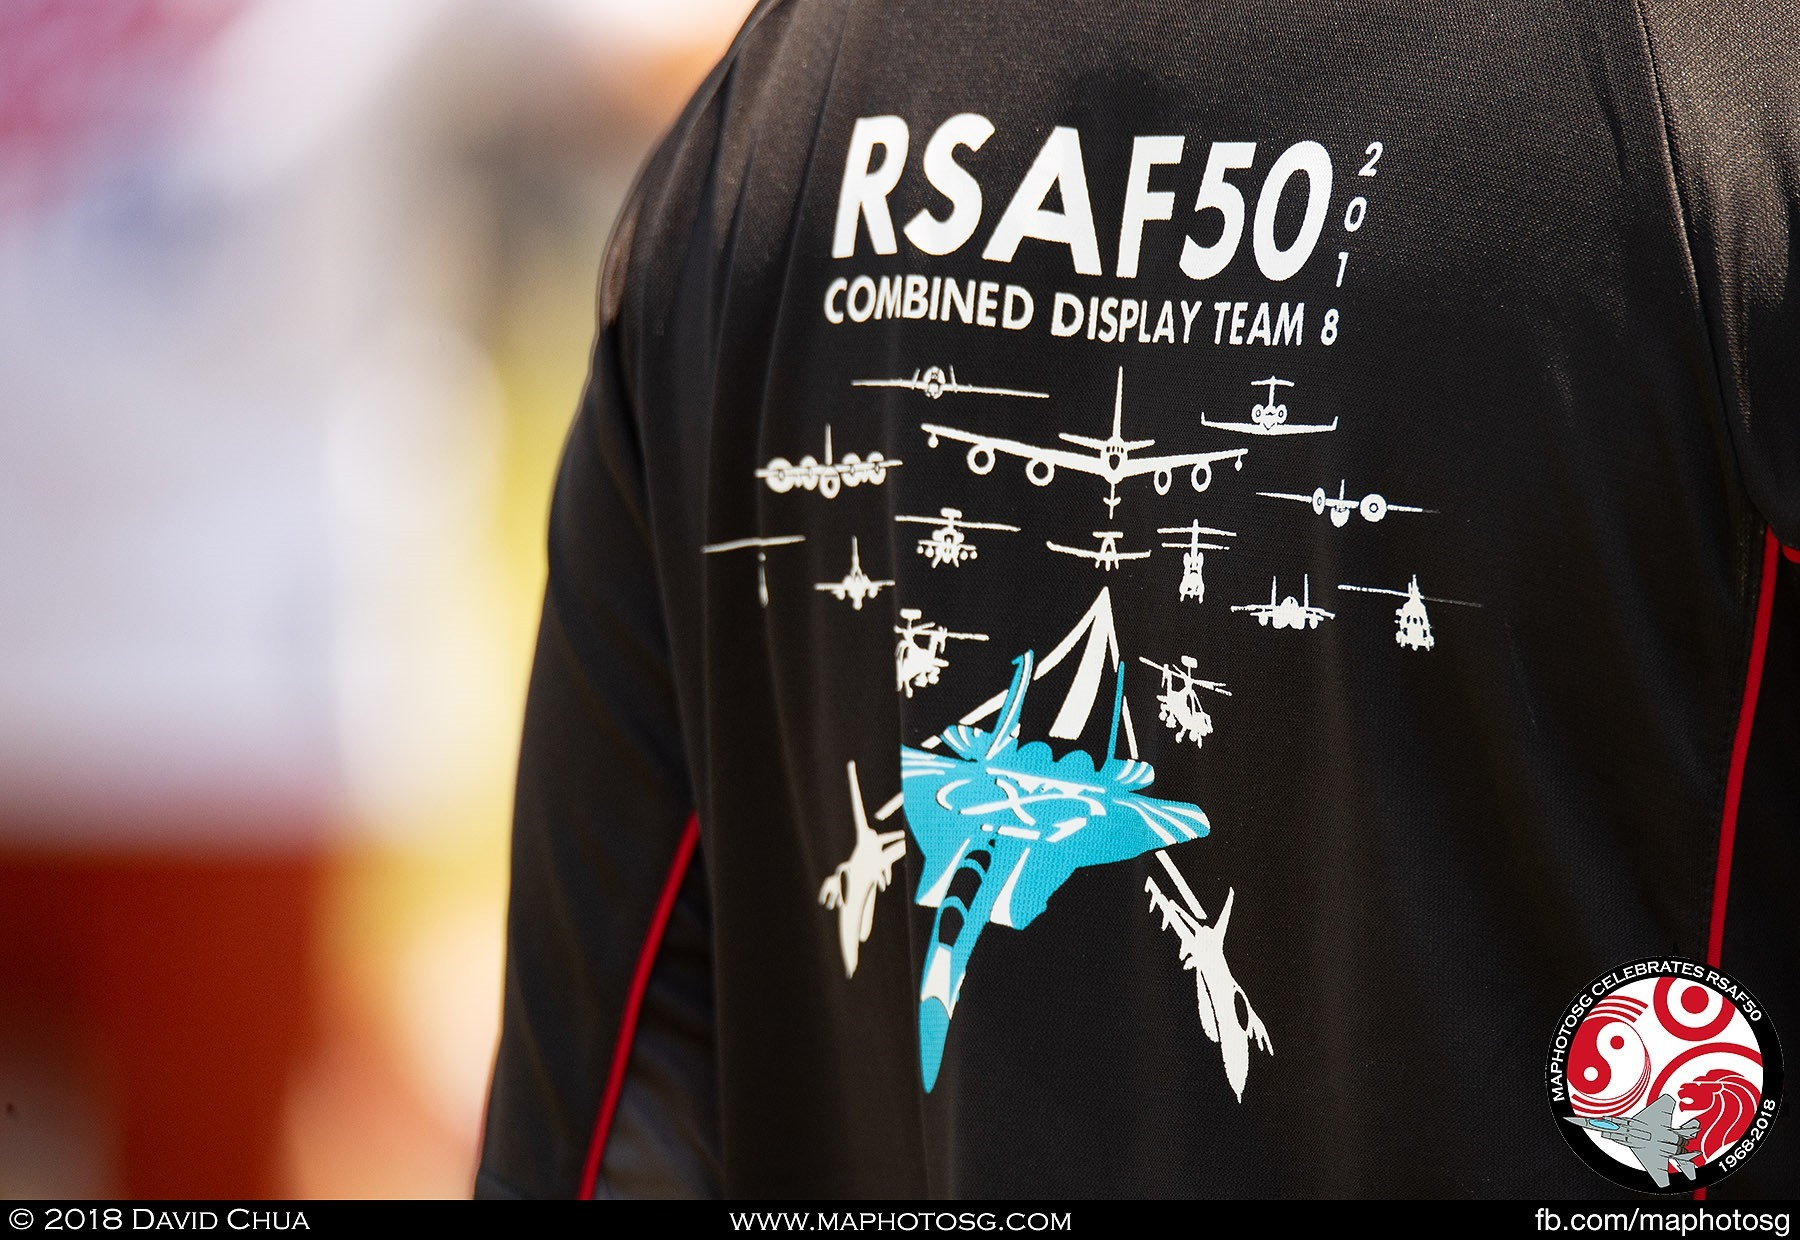 One of the many RSAF personnel supporting the event on site at the Marina Barrage wearing the aerial display team shirts.